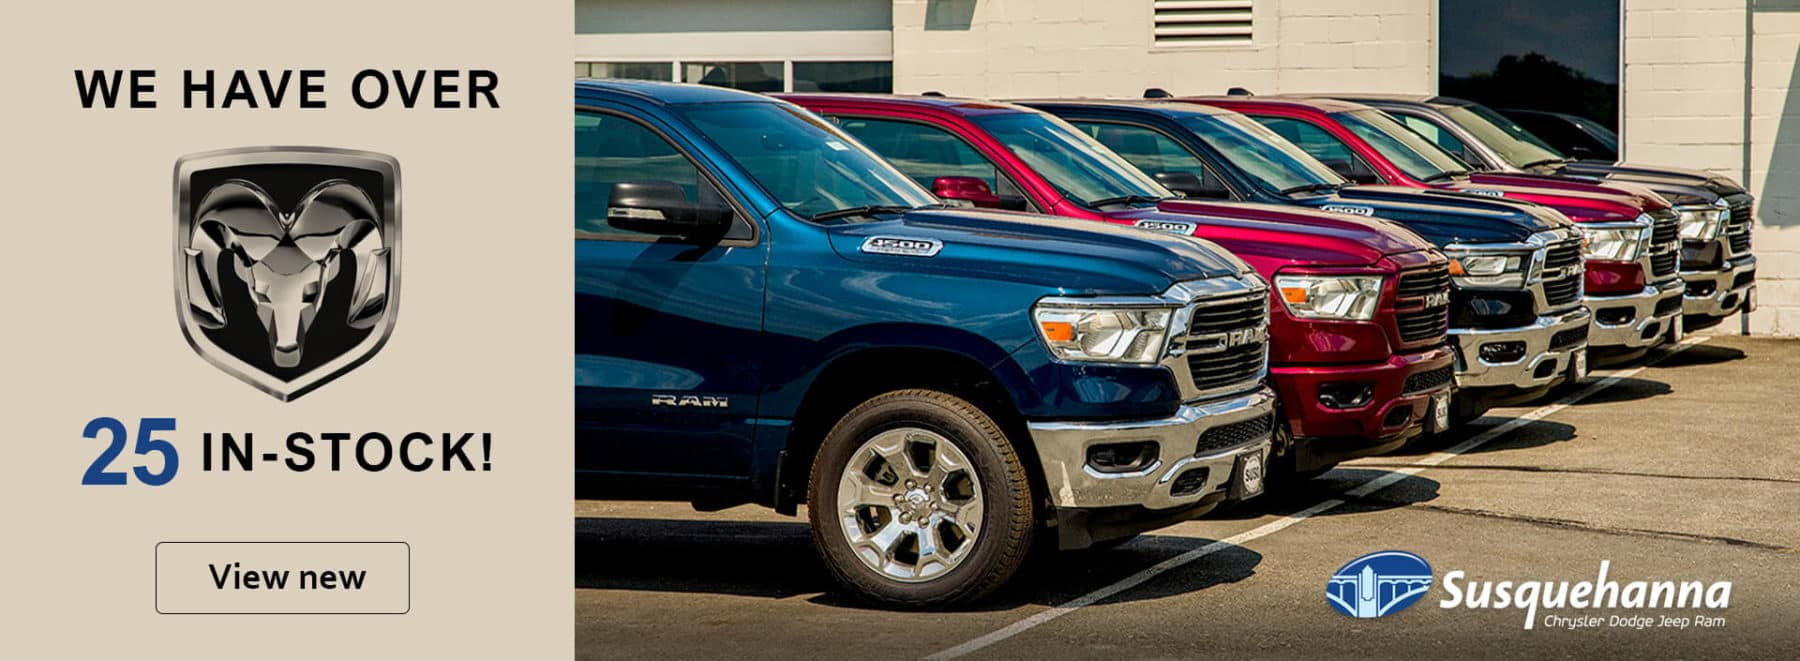 We have over 25 RAMs in stock! See our inventory!